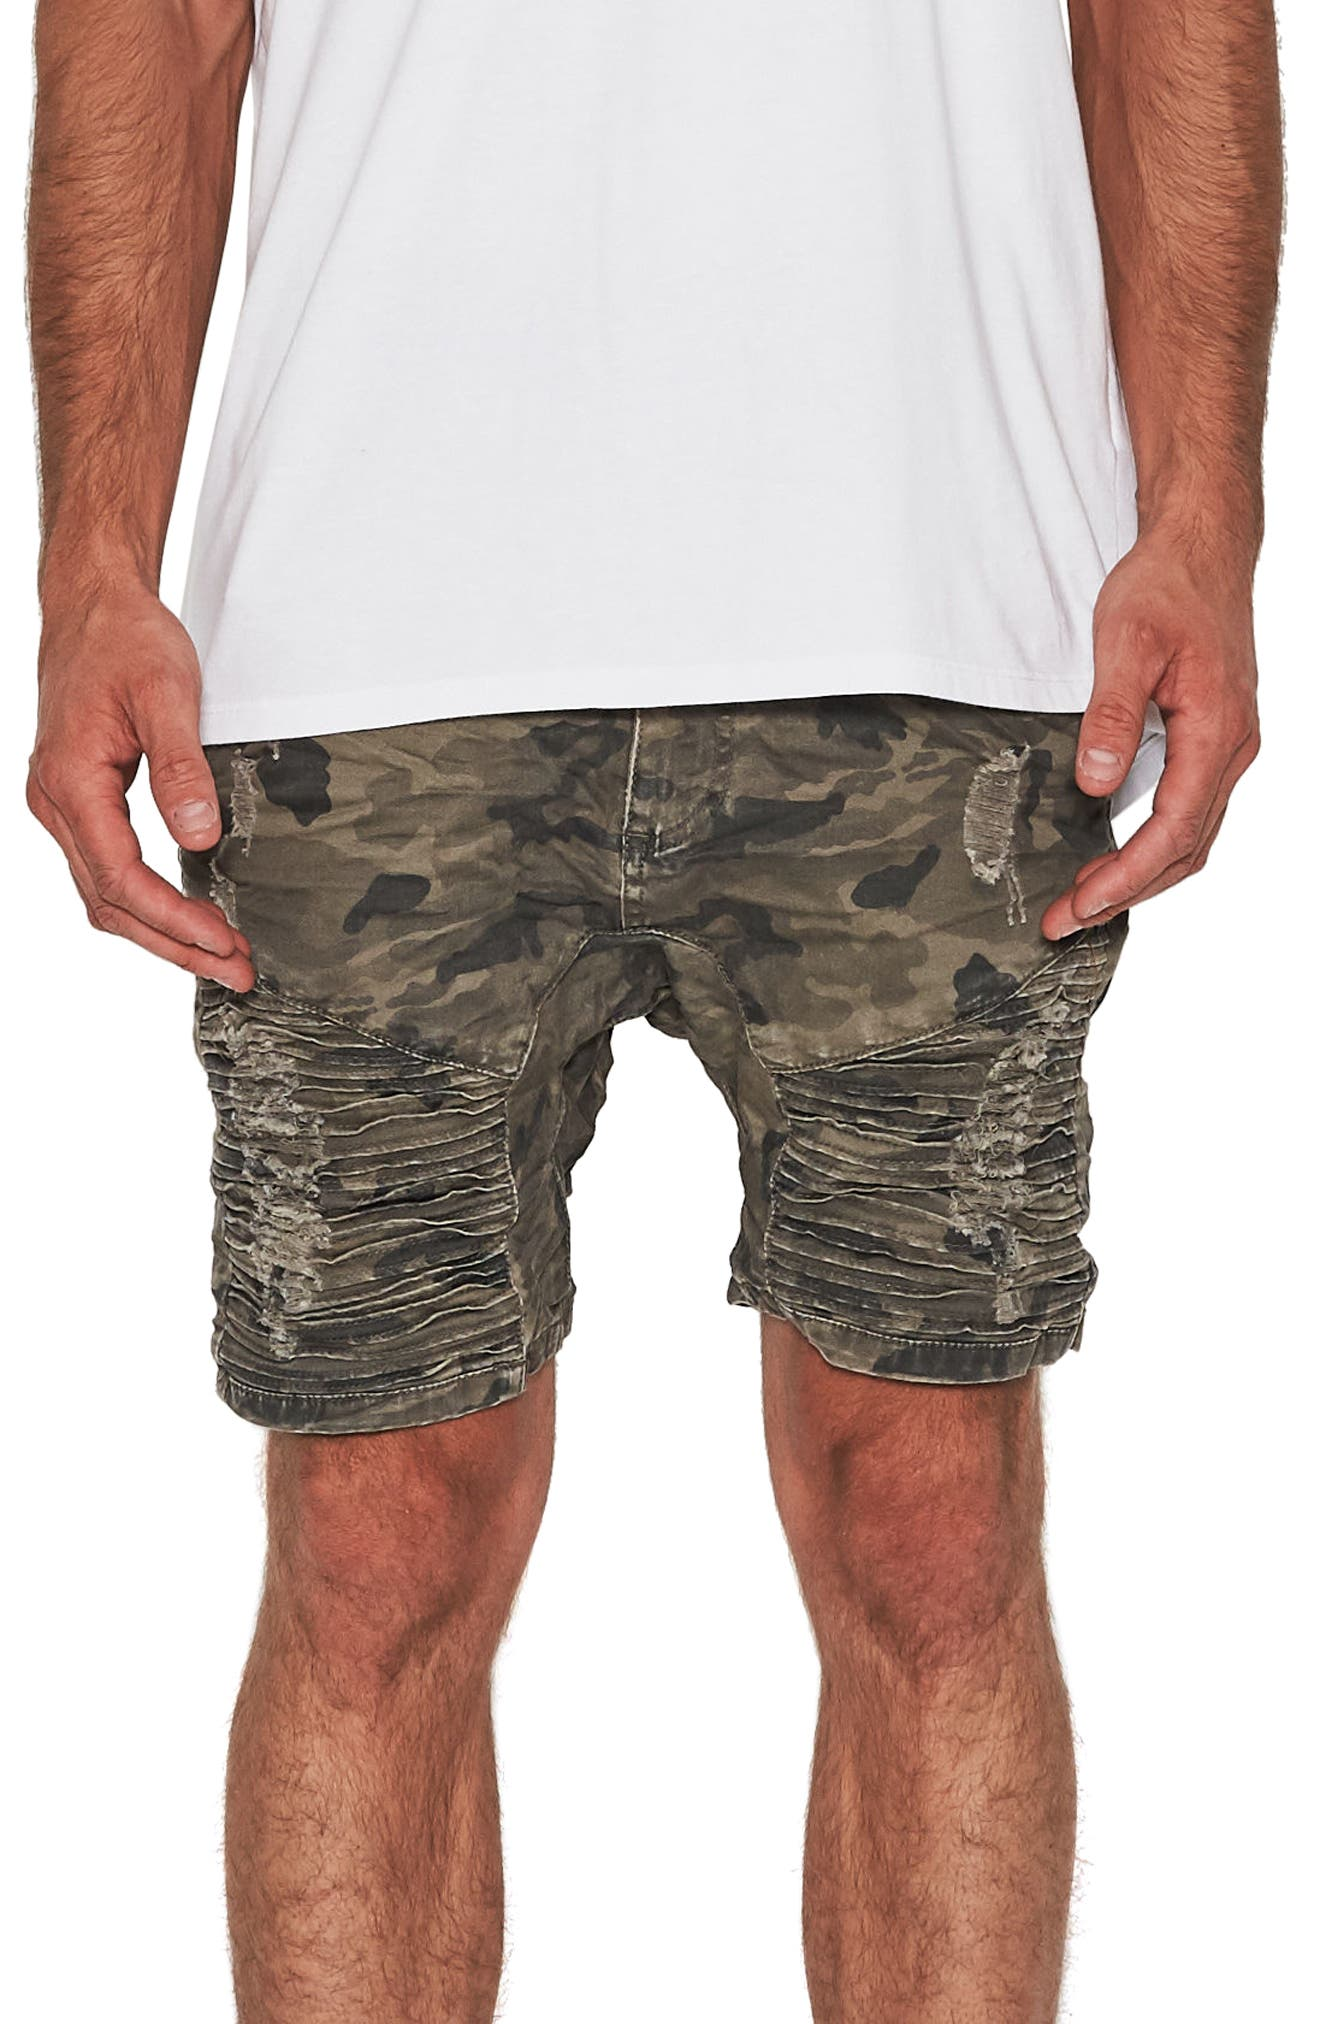 Destroyer Shorts,                             Main thumbnail 1, color,                             Airwolf Camo